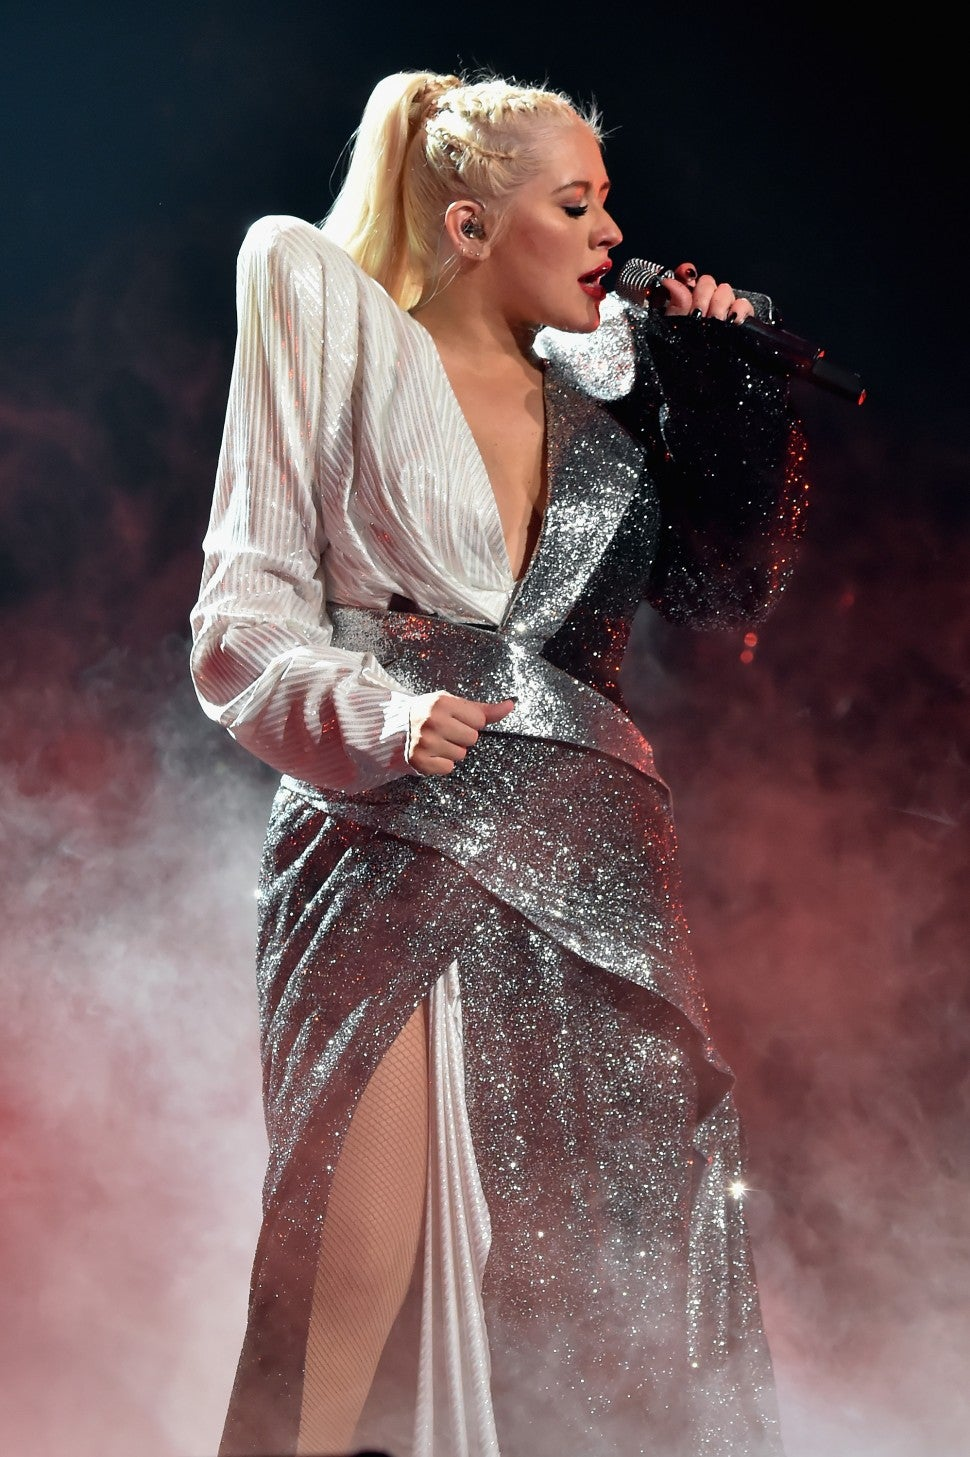 Christina Aguilera tour silver dress